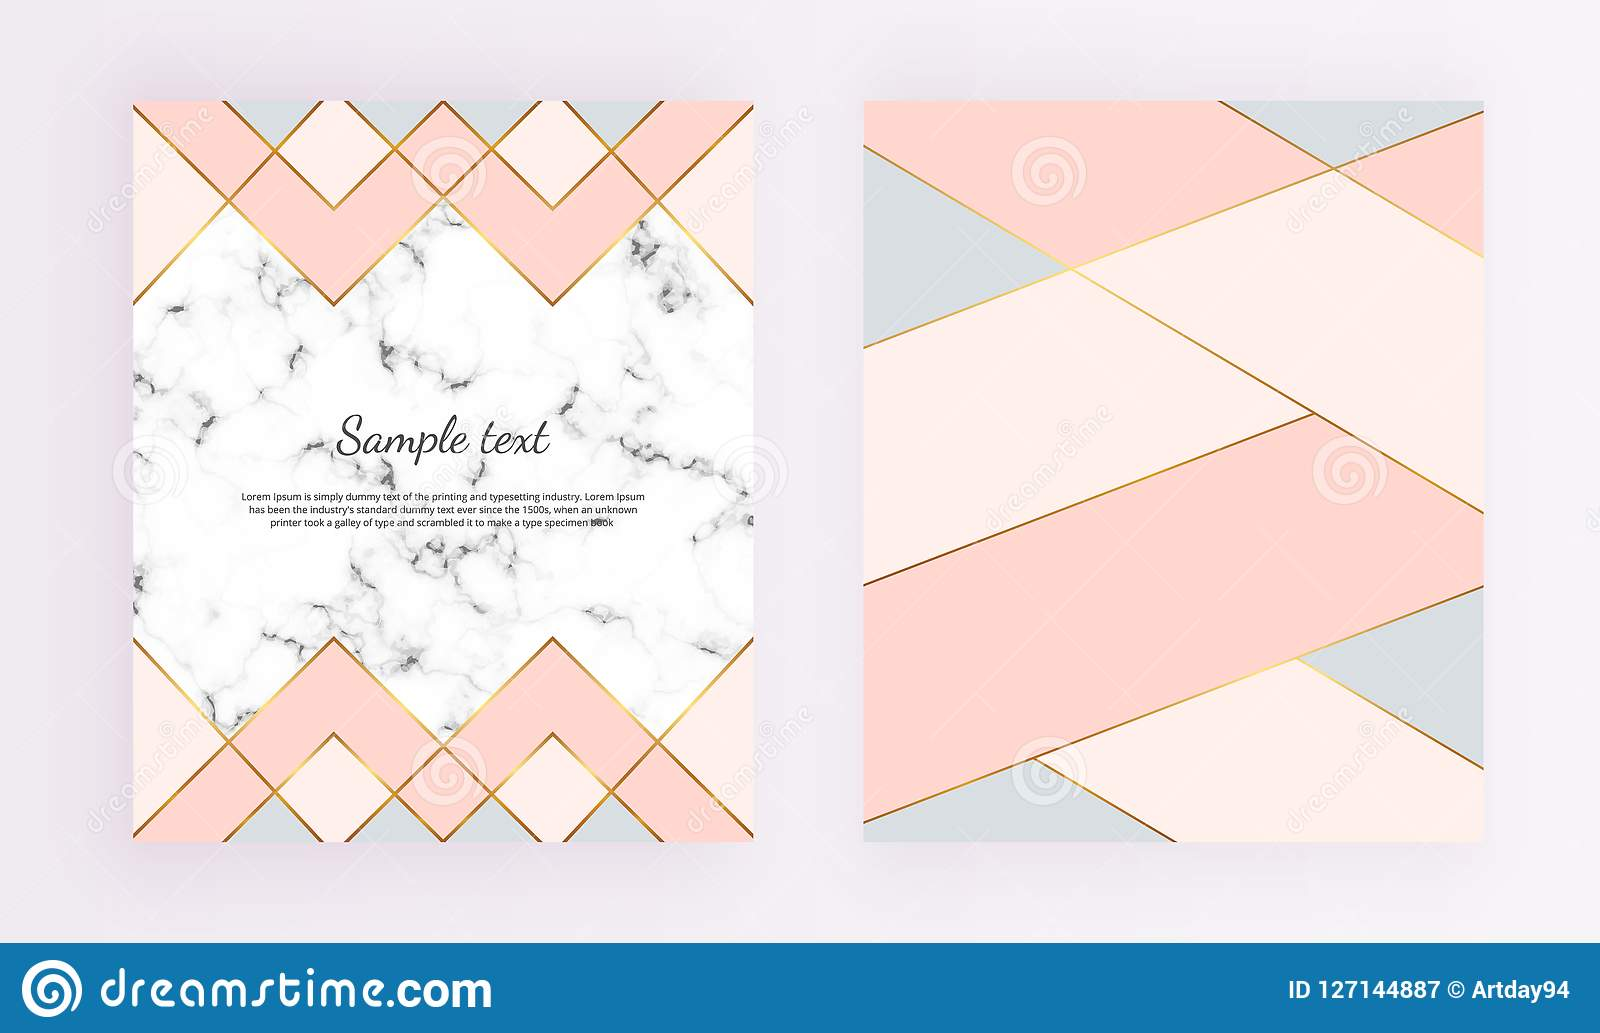 Modern geometric designs with marble texture, gold lines, pink, blue colors background. Trendy template for design banner, card, f